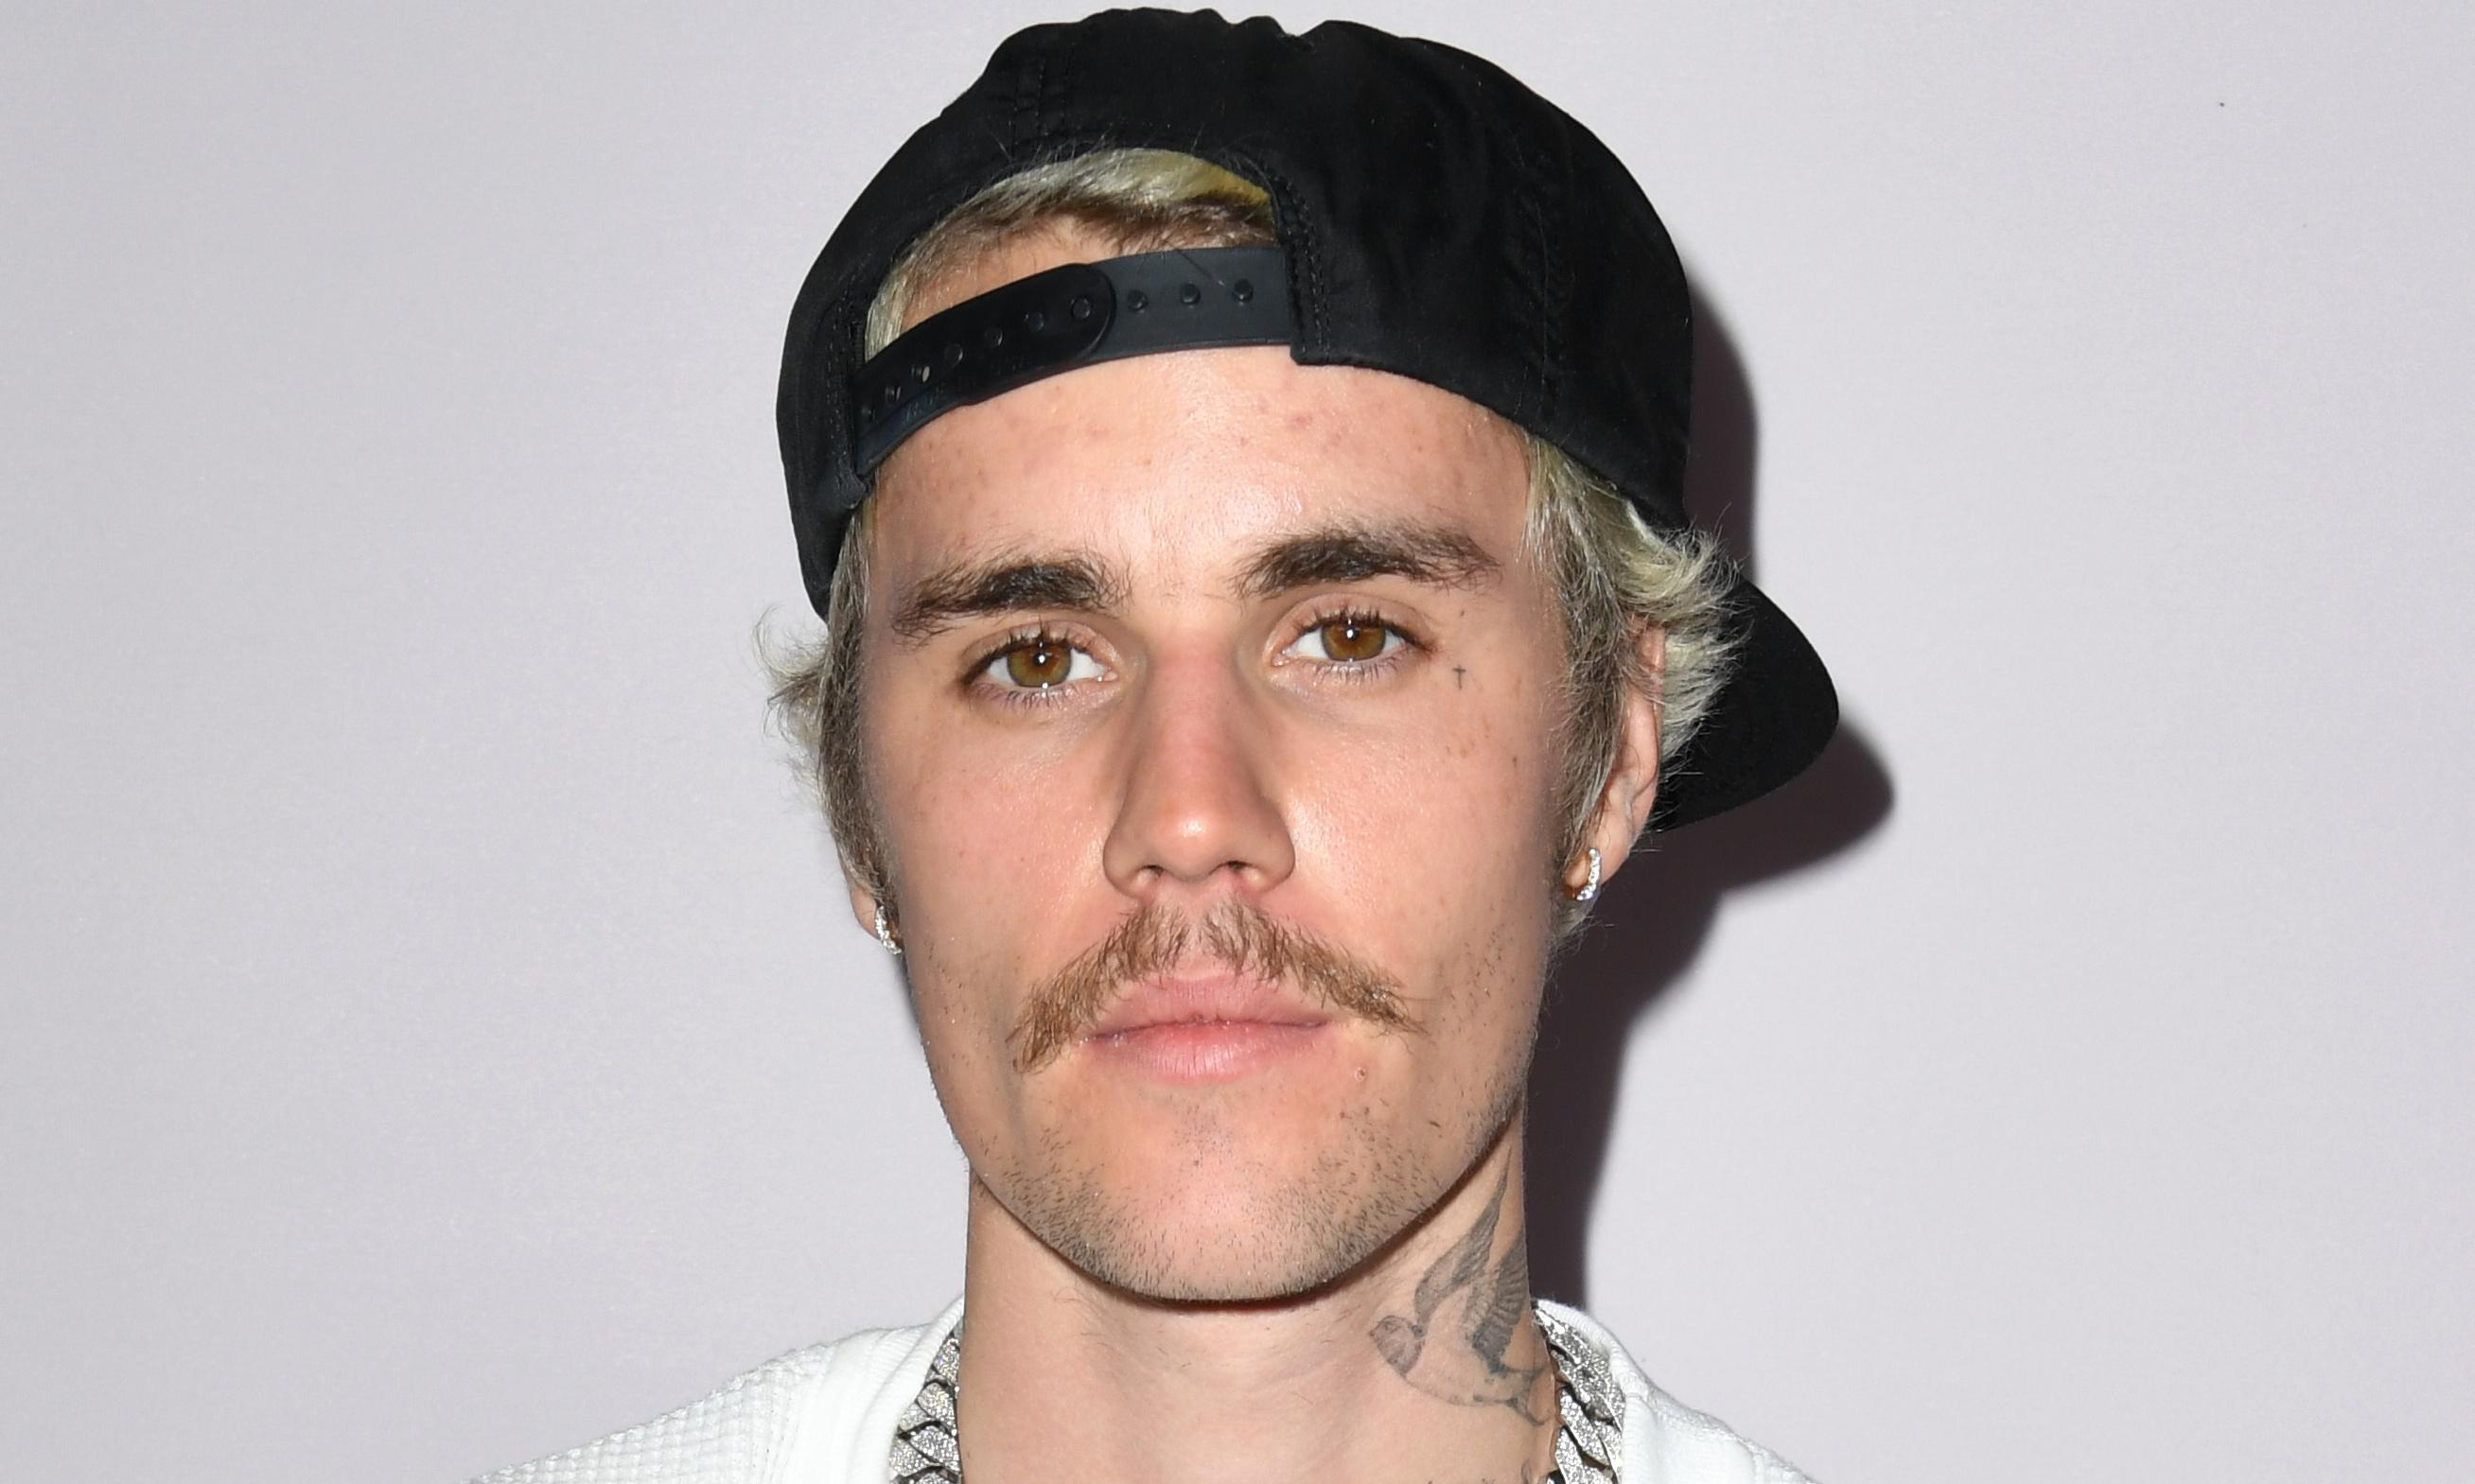 Justin Bieber: Changes review